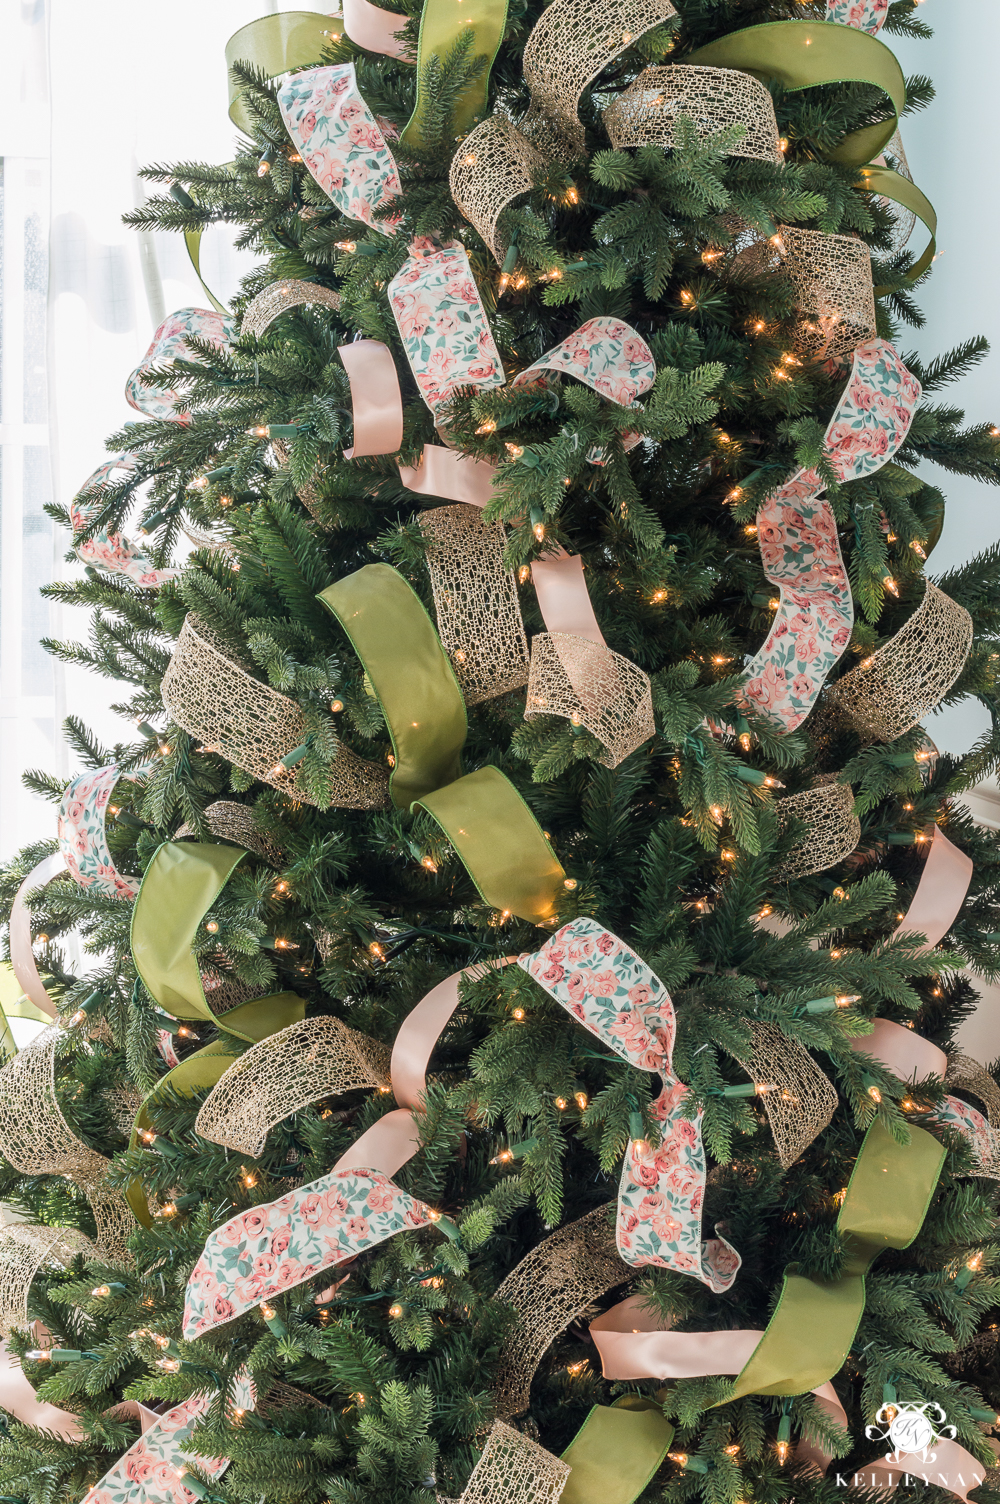 step by step instructions to decorate a christmas tree using ribbon - Photos Of Christmas Trees Decorated With Ribbon